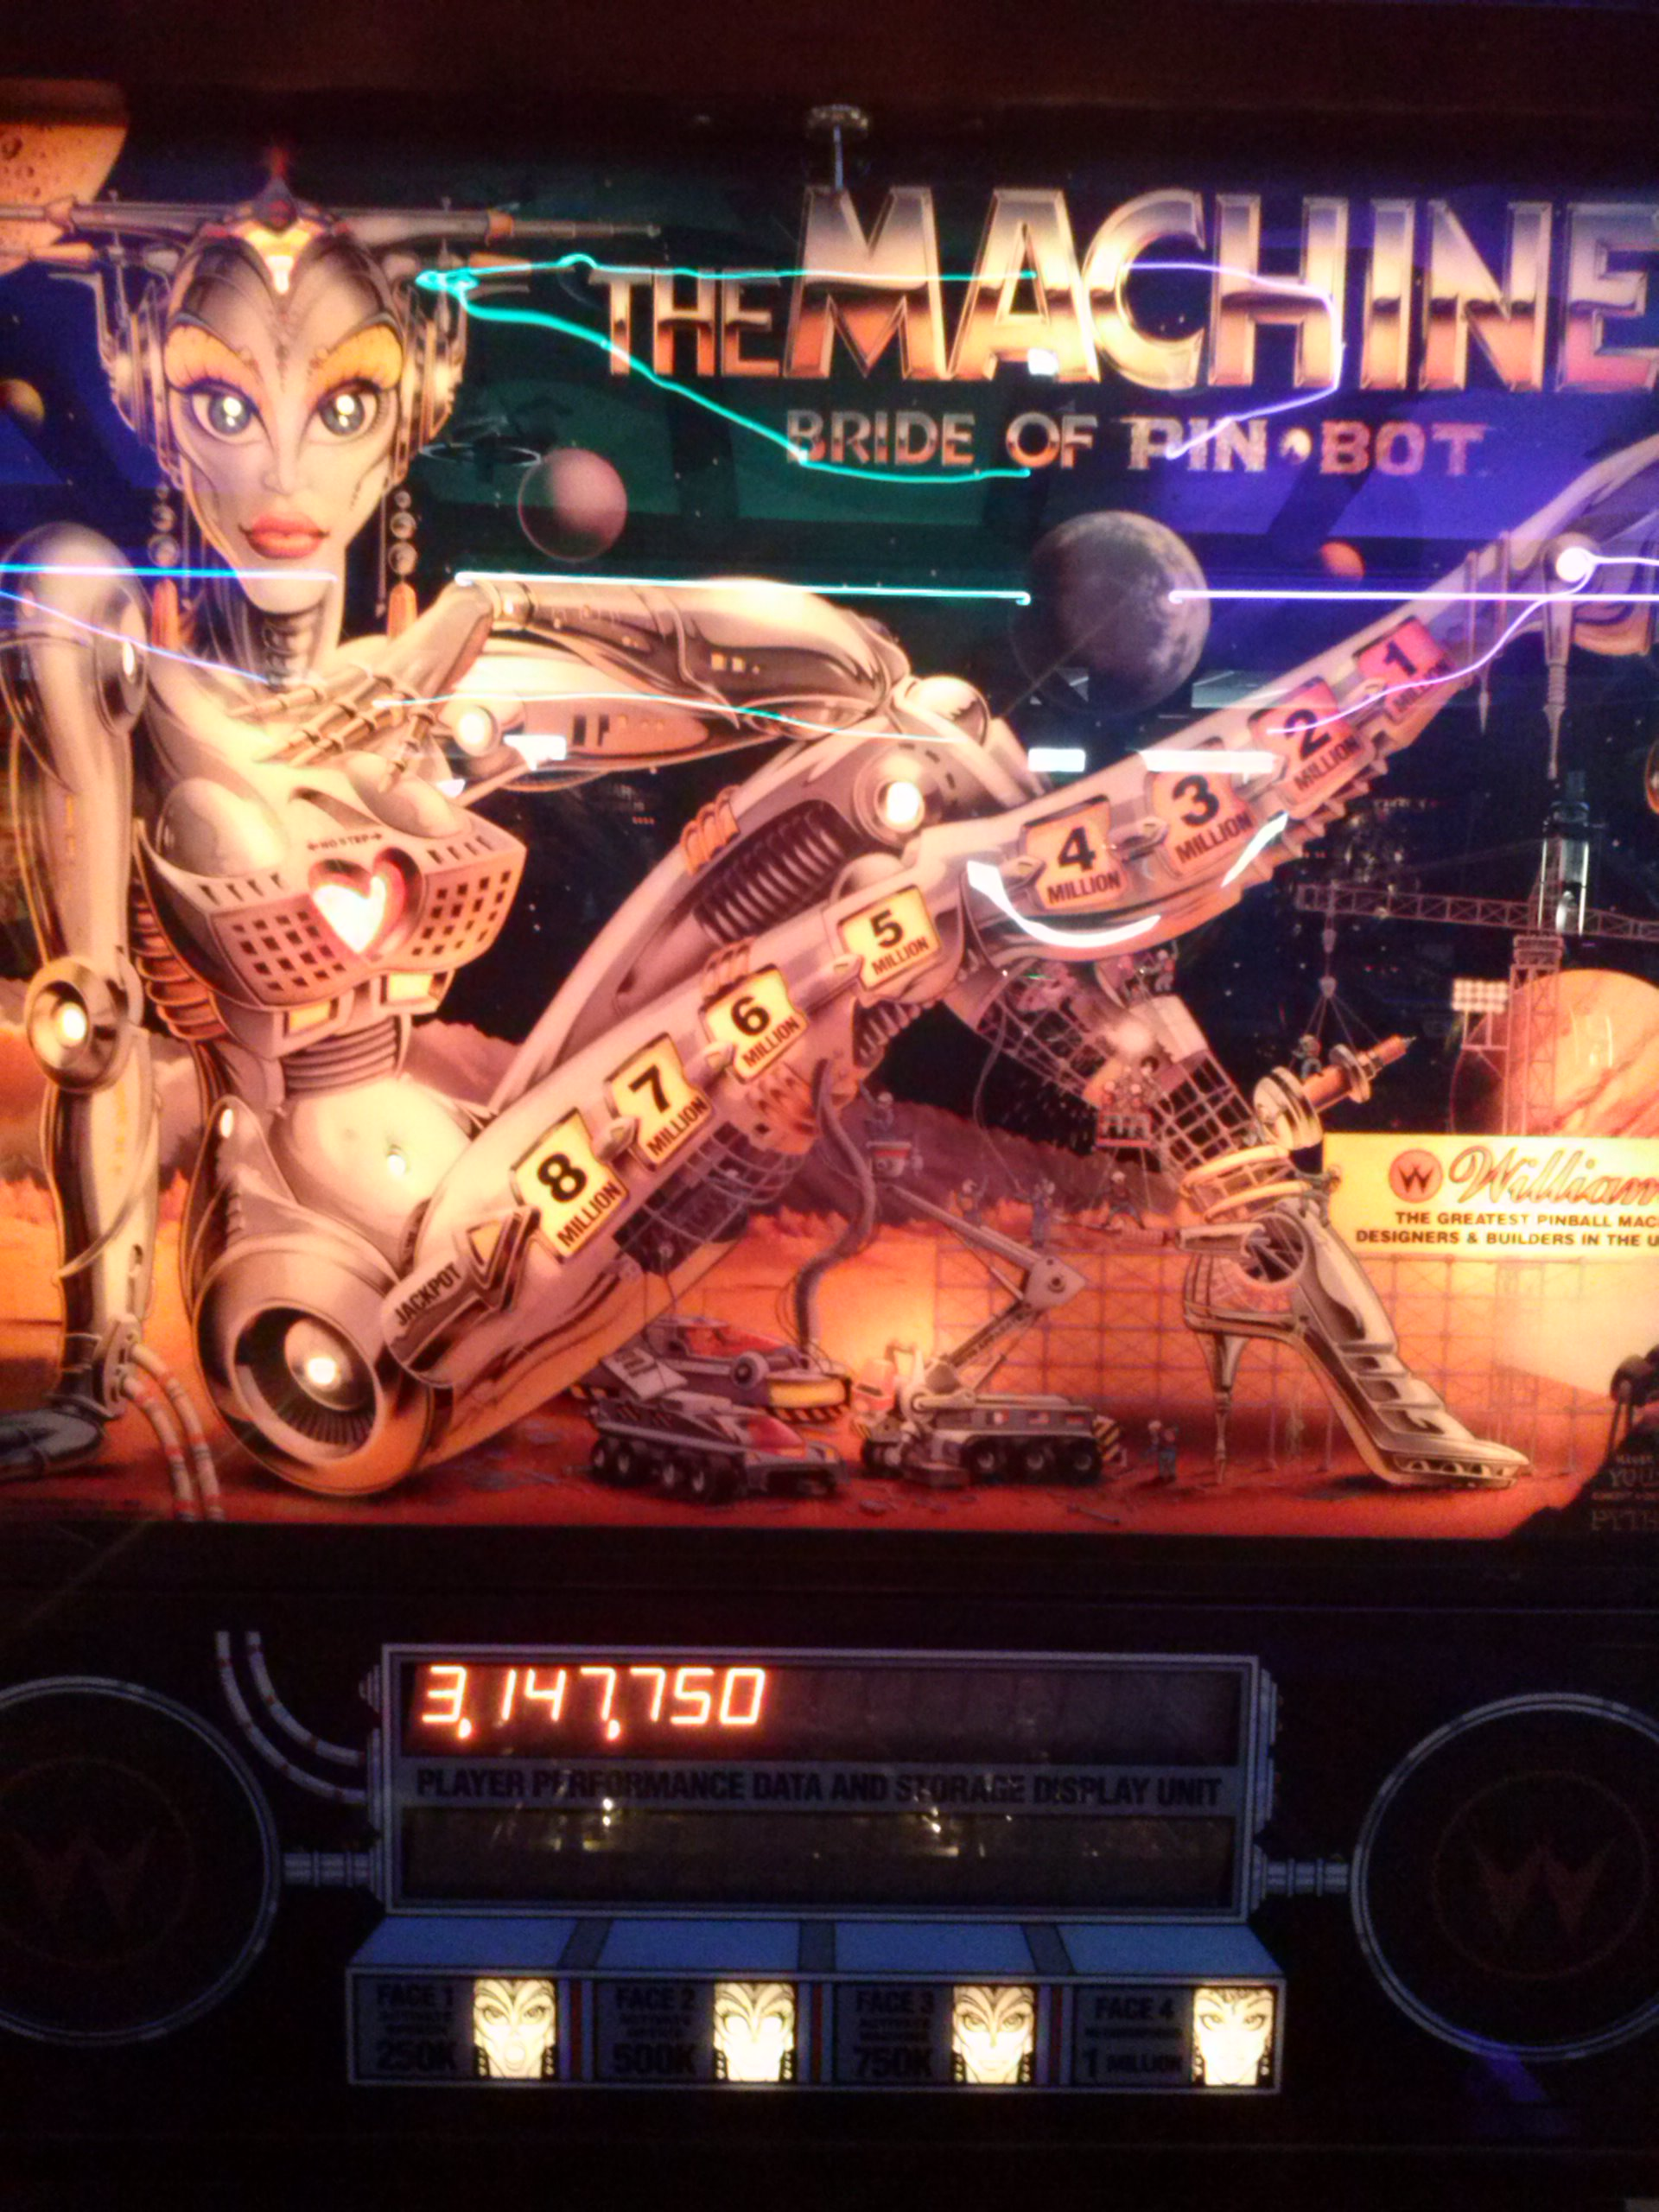 nester: The Machine: Bride of Pin*Bot (Pinball: 3 Balls) 3,147,750 points on 2014-05-20 14:42:50